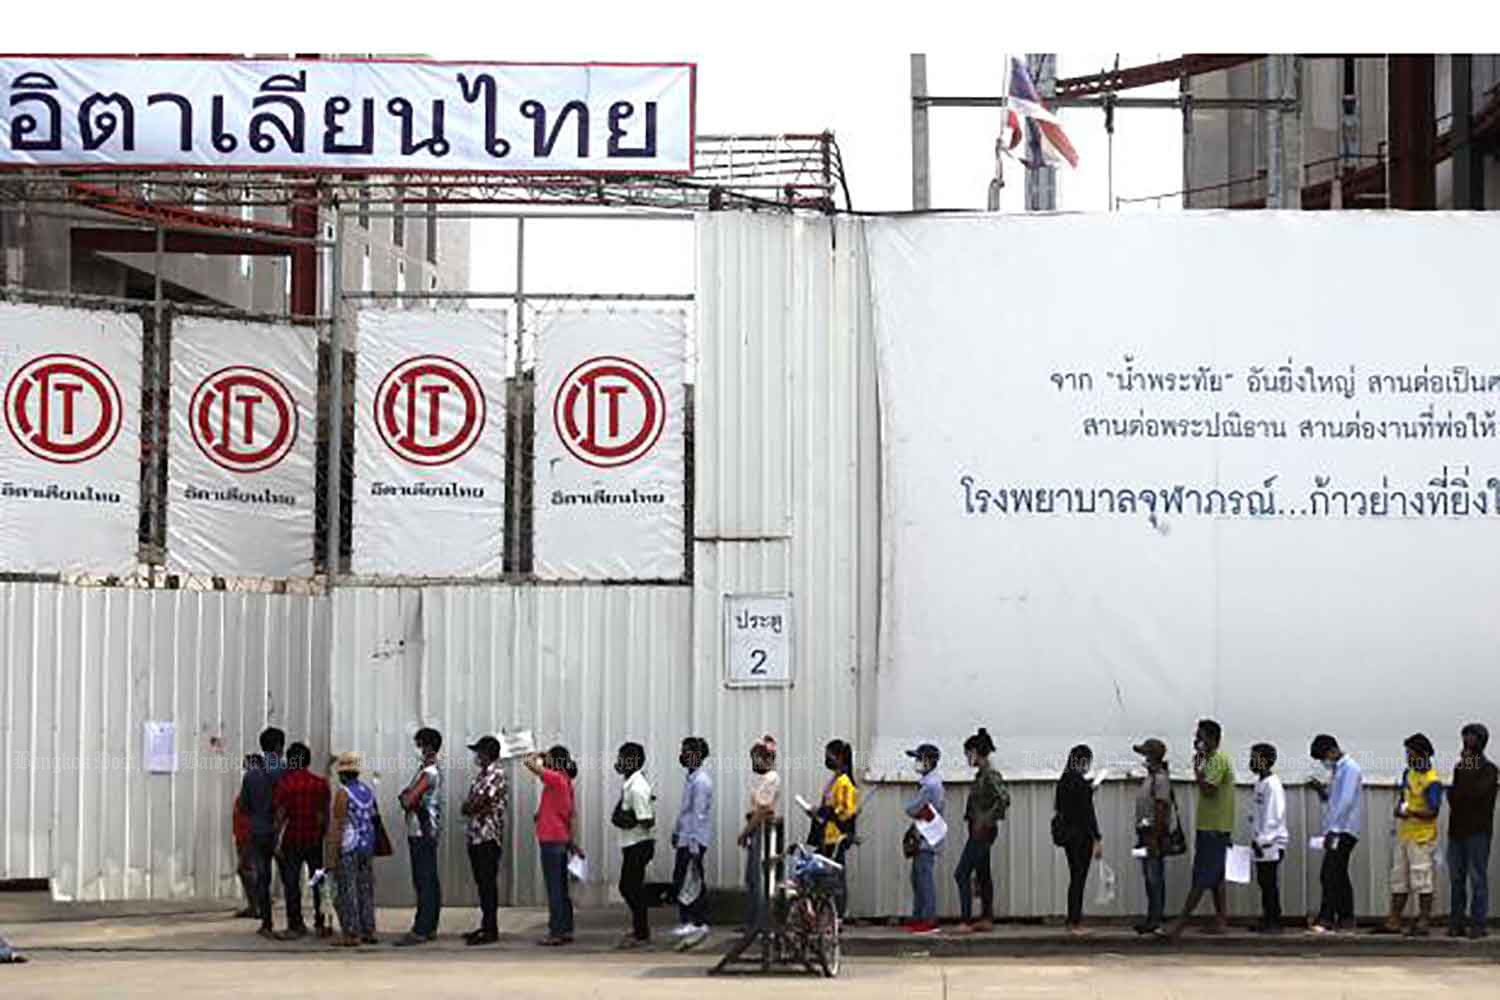 Workers form a long line as they wait to undergo a Covid-19 test at their construction site in Bangkok's Laksi district on Tuesday. Residents in communities around the site are also being tested. So far, 680 of the 1,667 workers have tested positive. Of them, 120 are being treated in hospital. (Photo: Pattarapong Chatpattarasill)